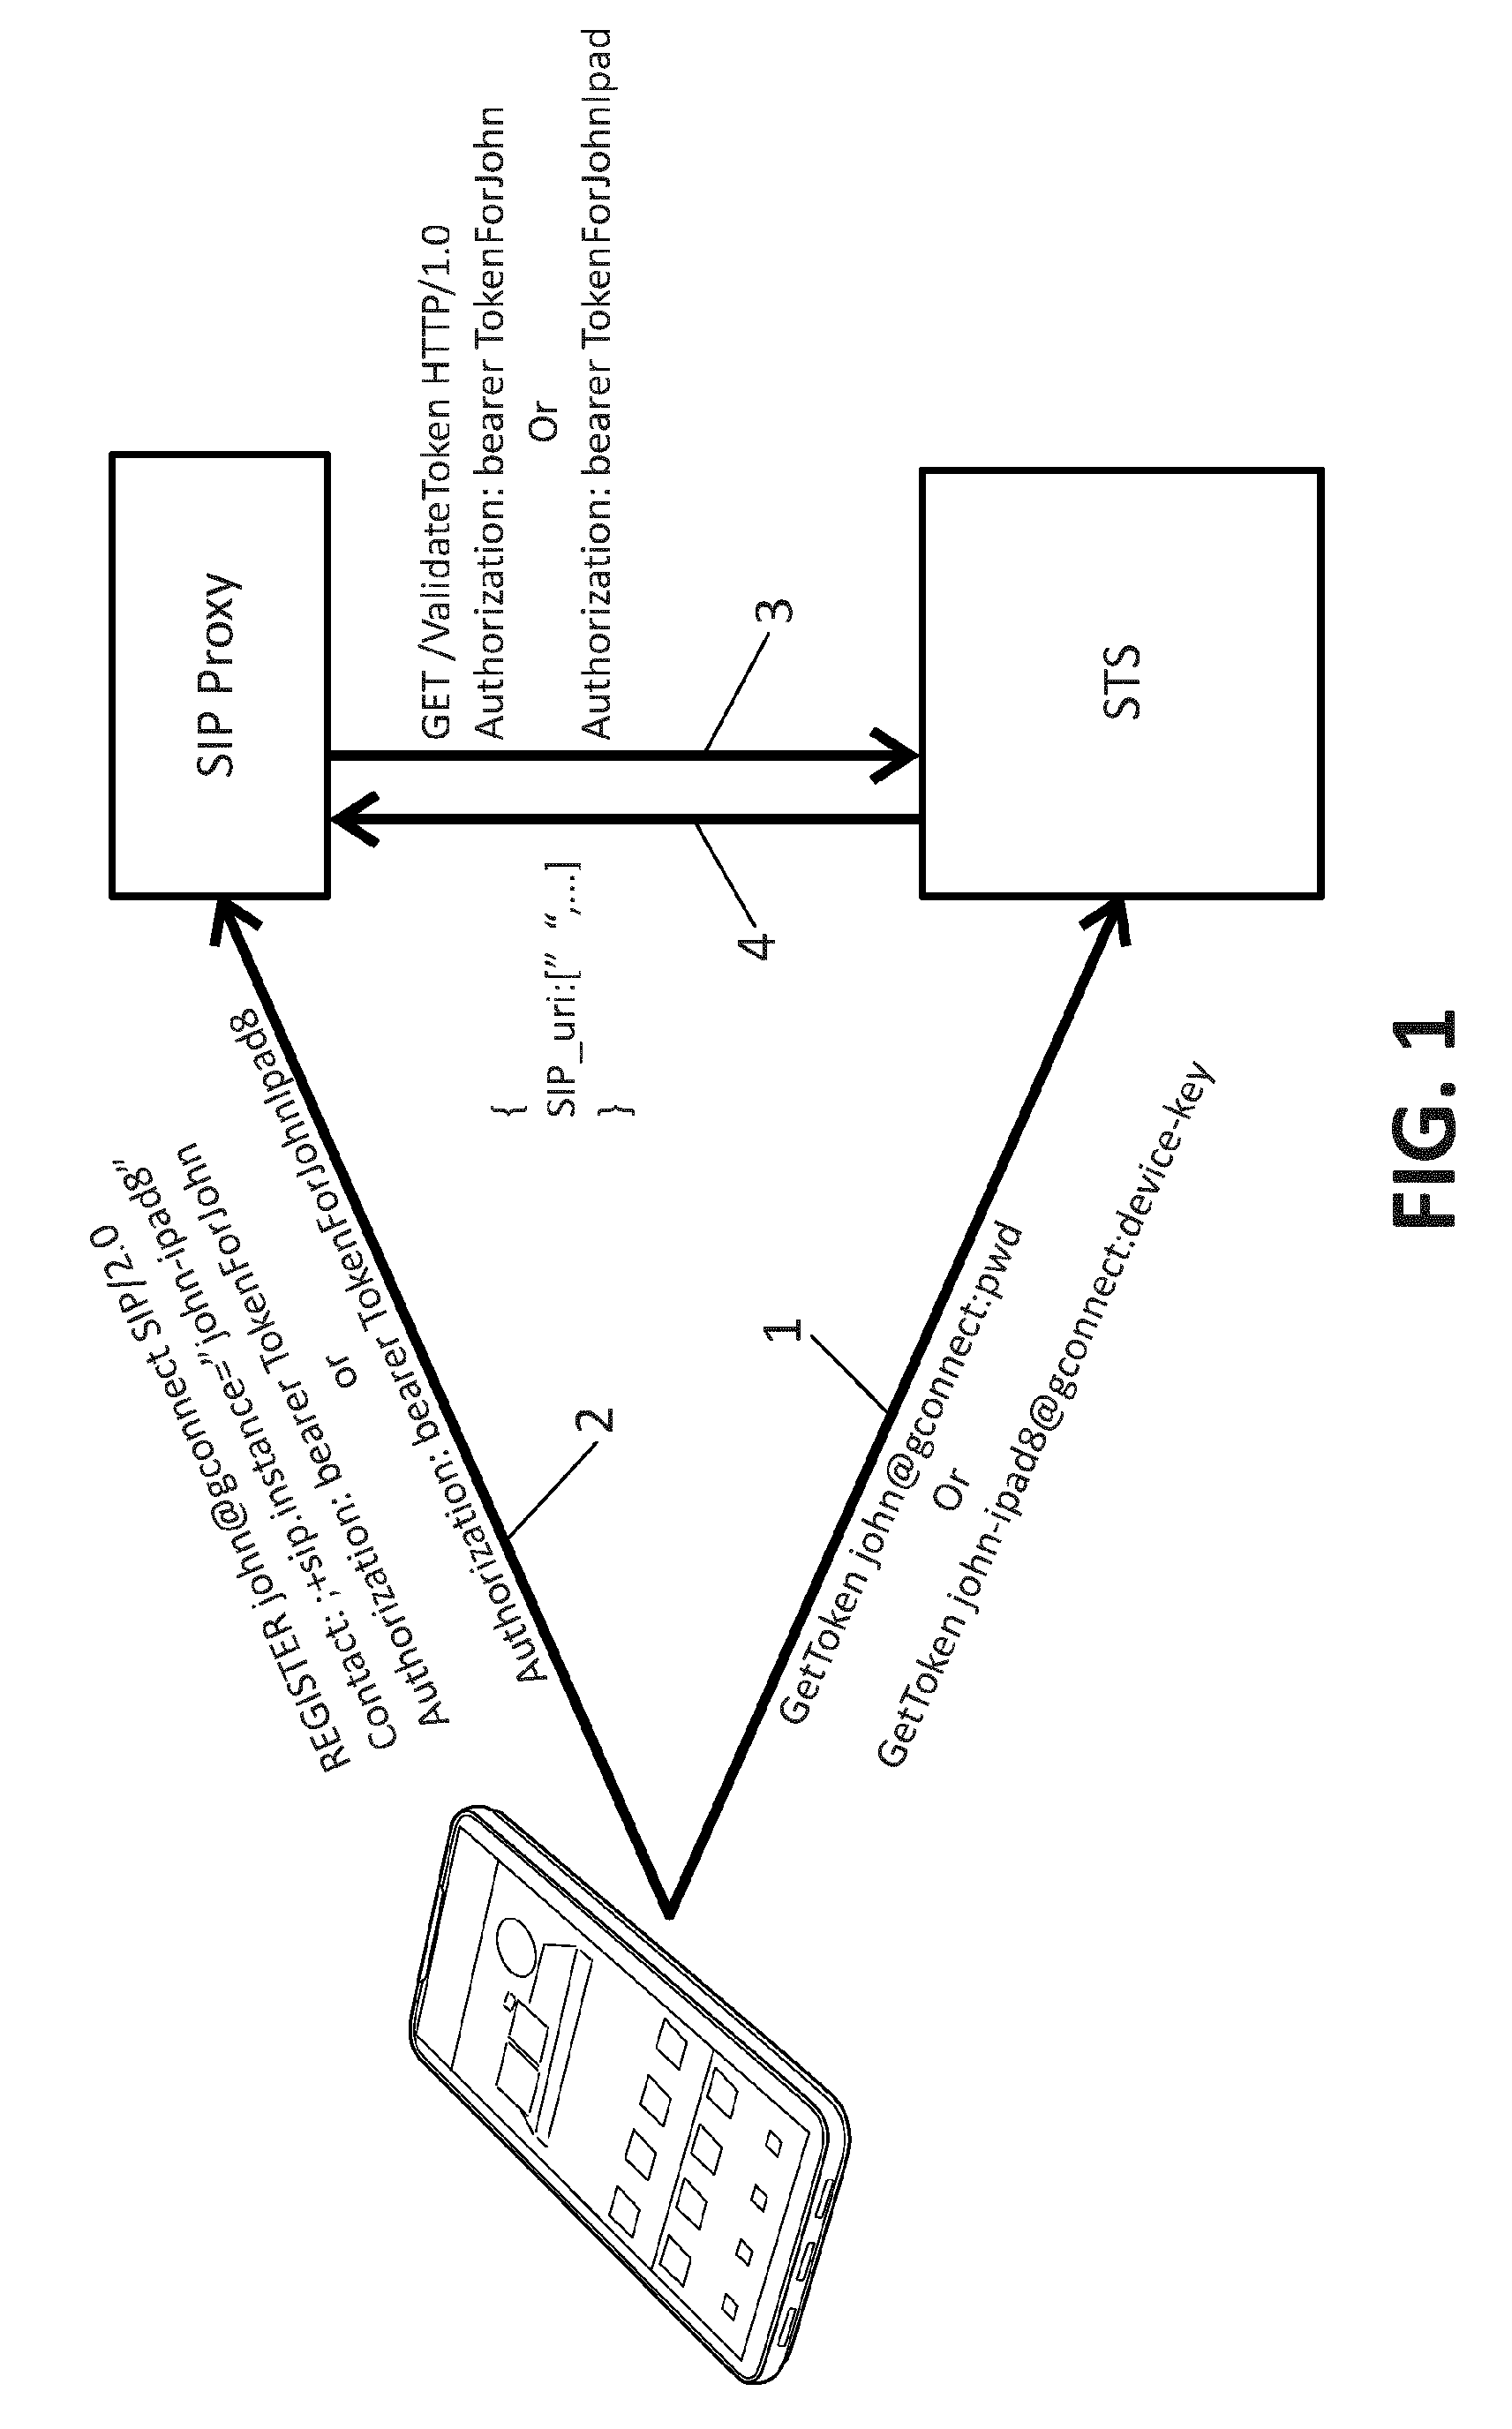 Method for authenticate a user associated to a user agent